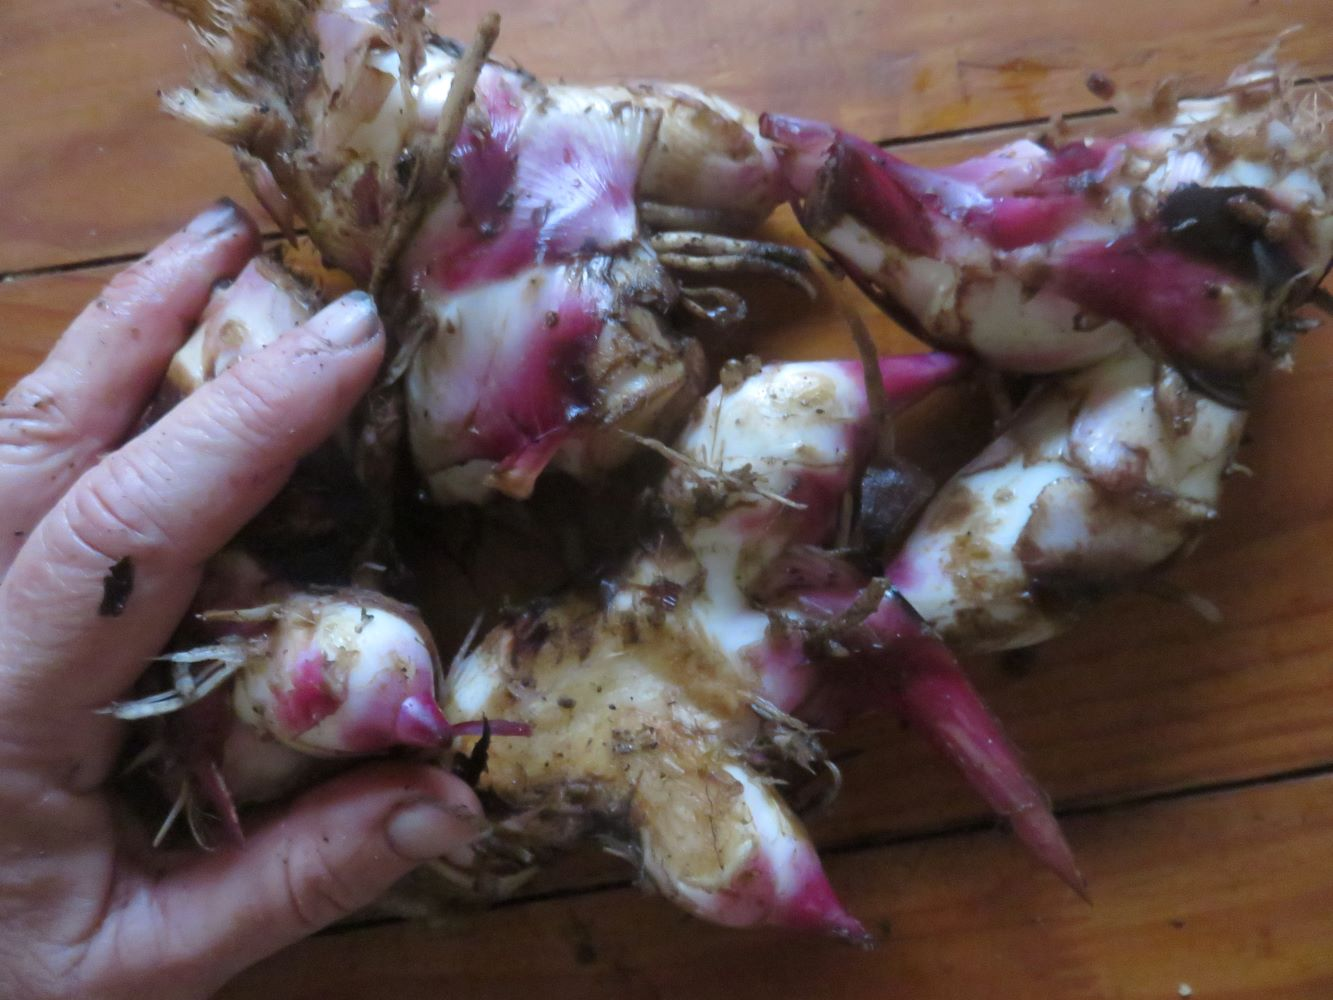 Food for the microbes and food for we. The amazing perennial arrowroot.